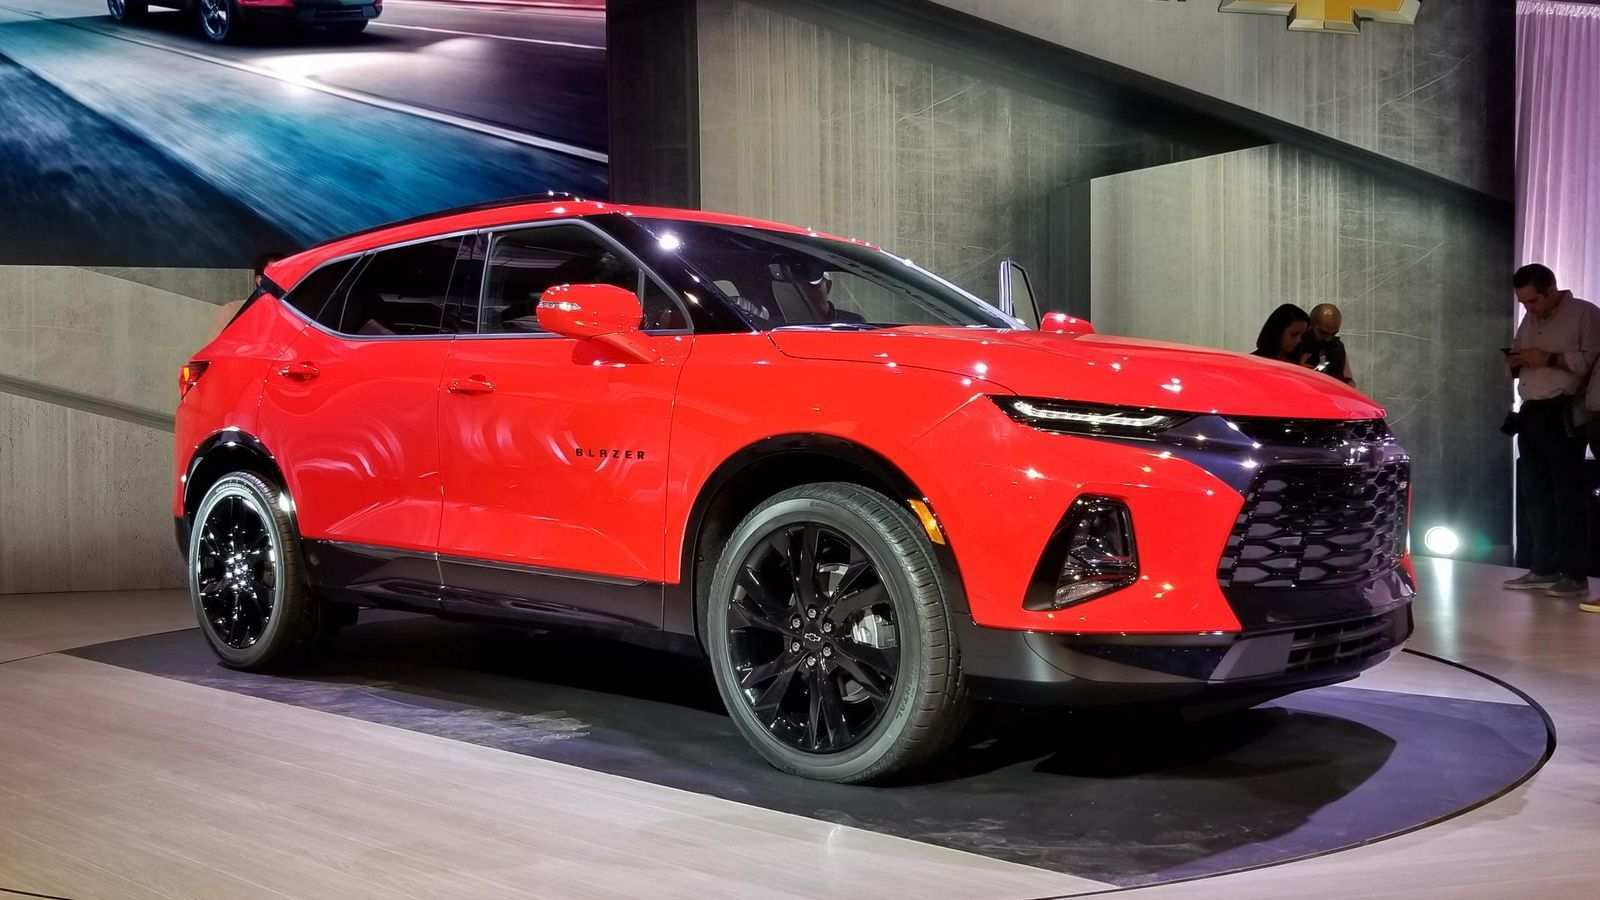 36 Gallery of New Nueva Chevrolet 2019 Release Date Performance by New Nueva Chevrolet 2019 Release Date